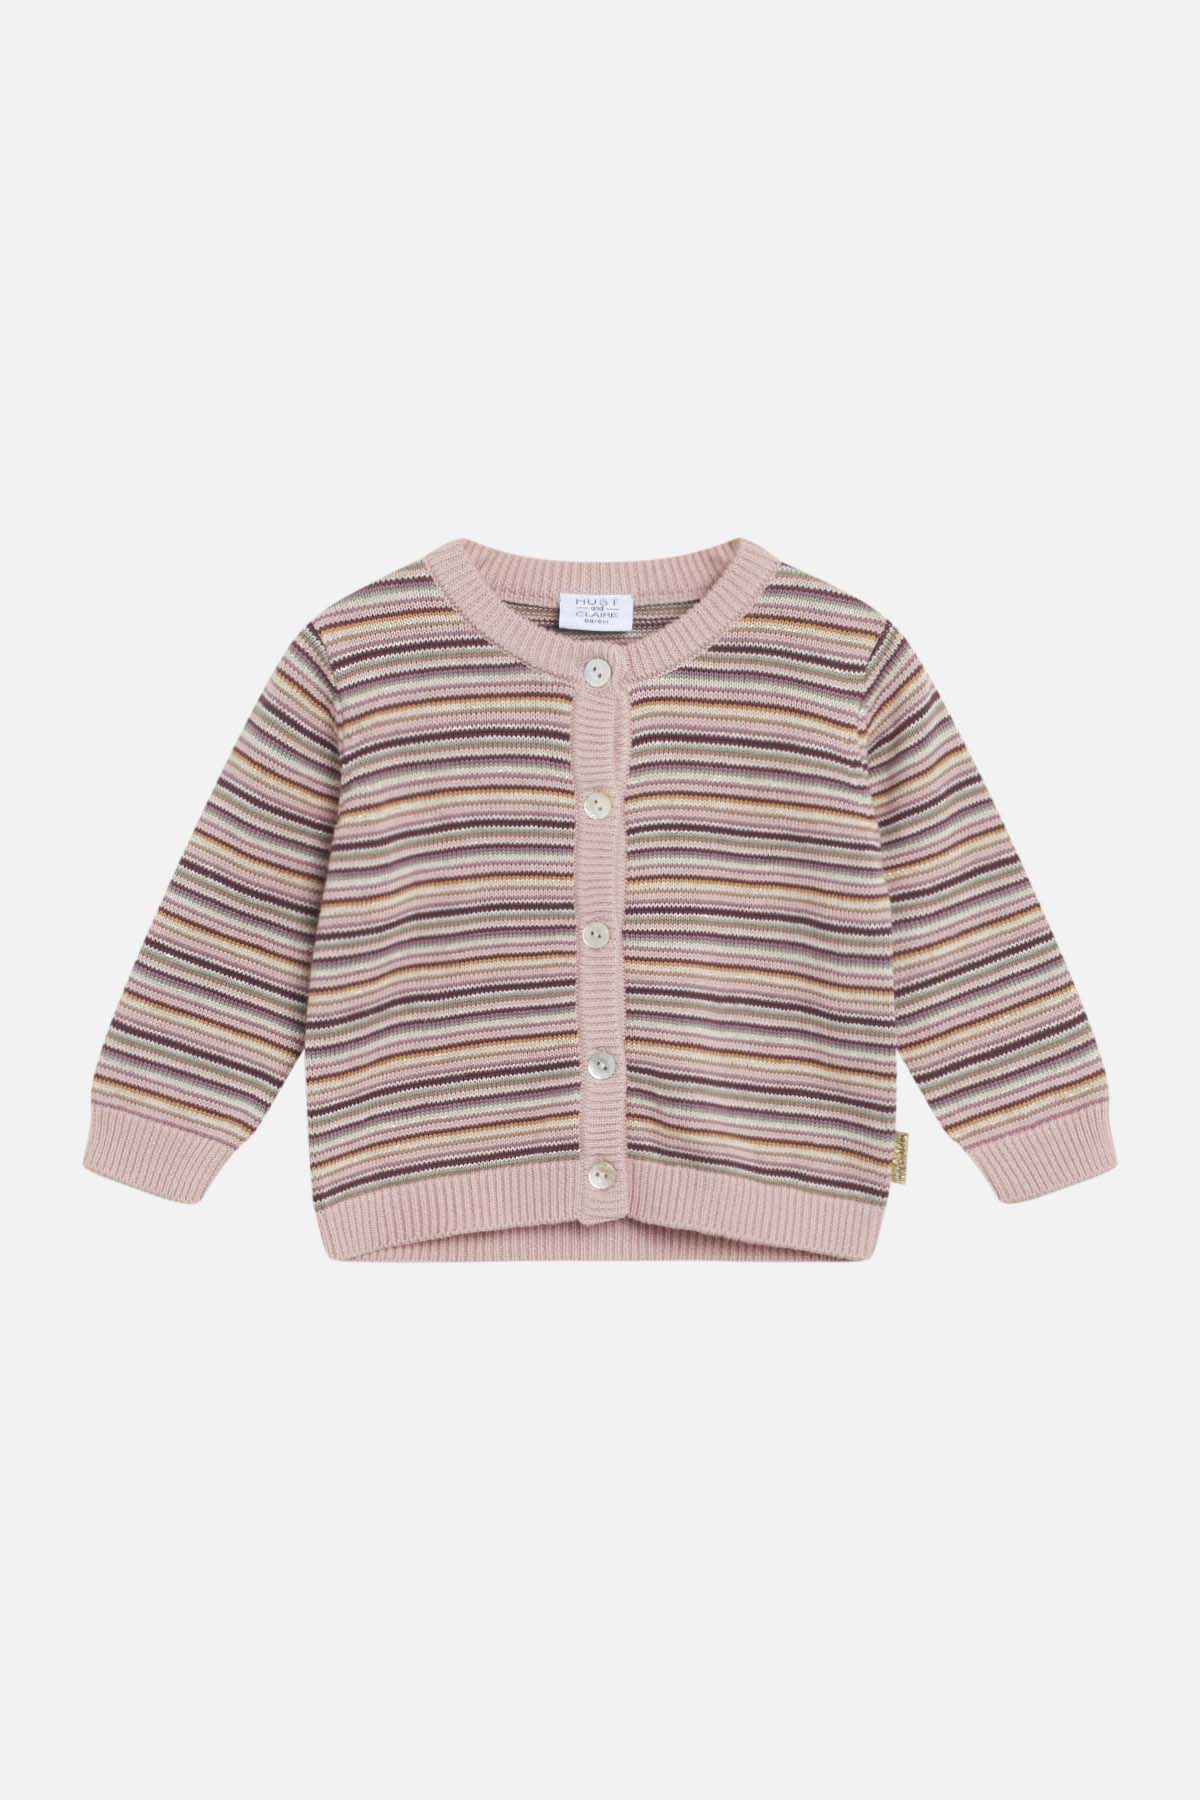 Hust & Claire Catin cardigan